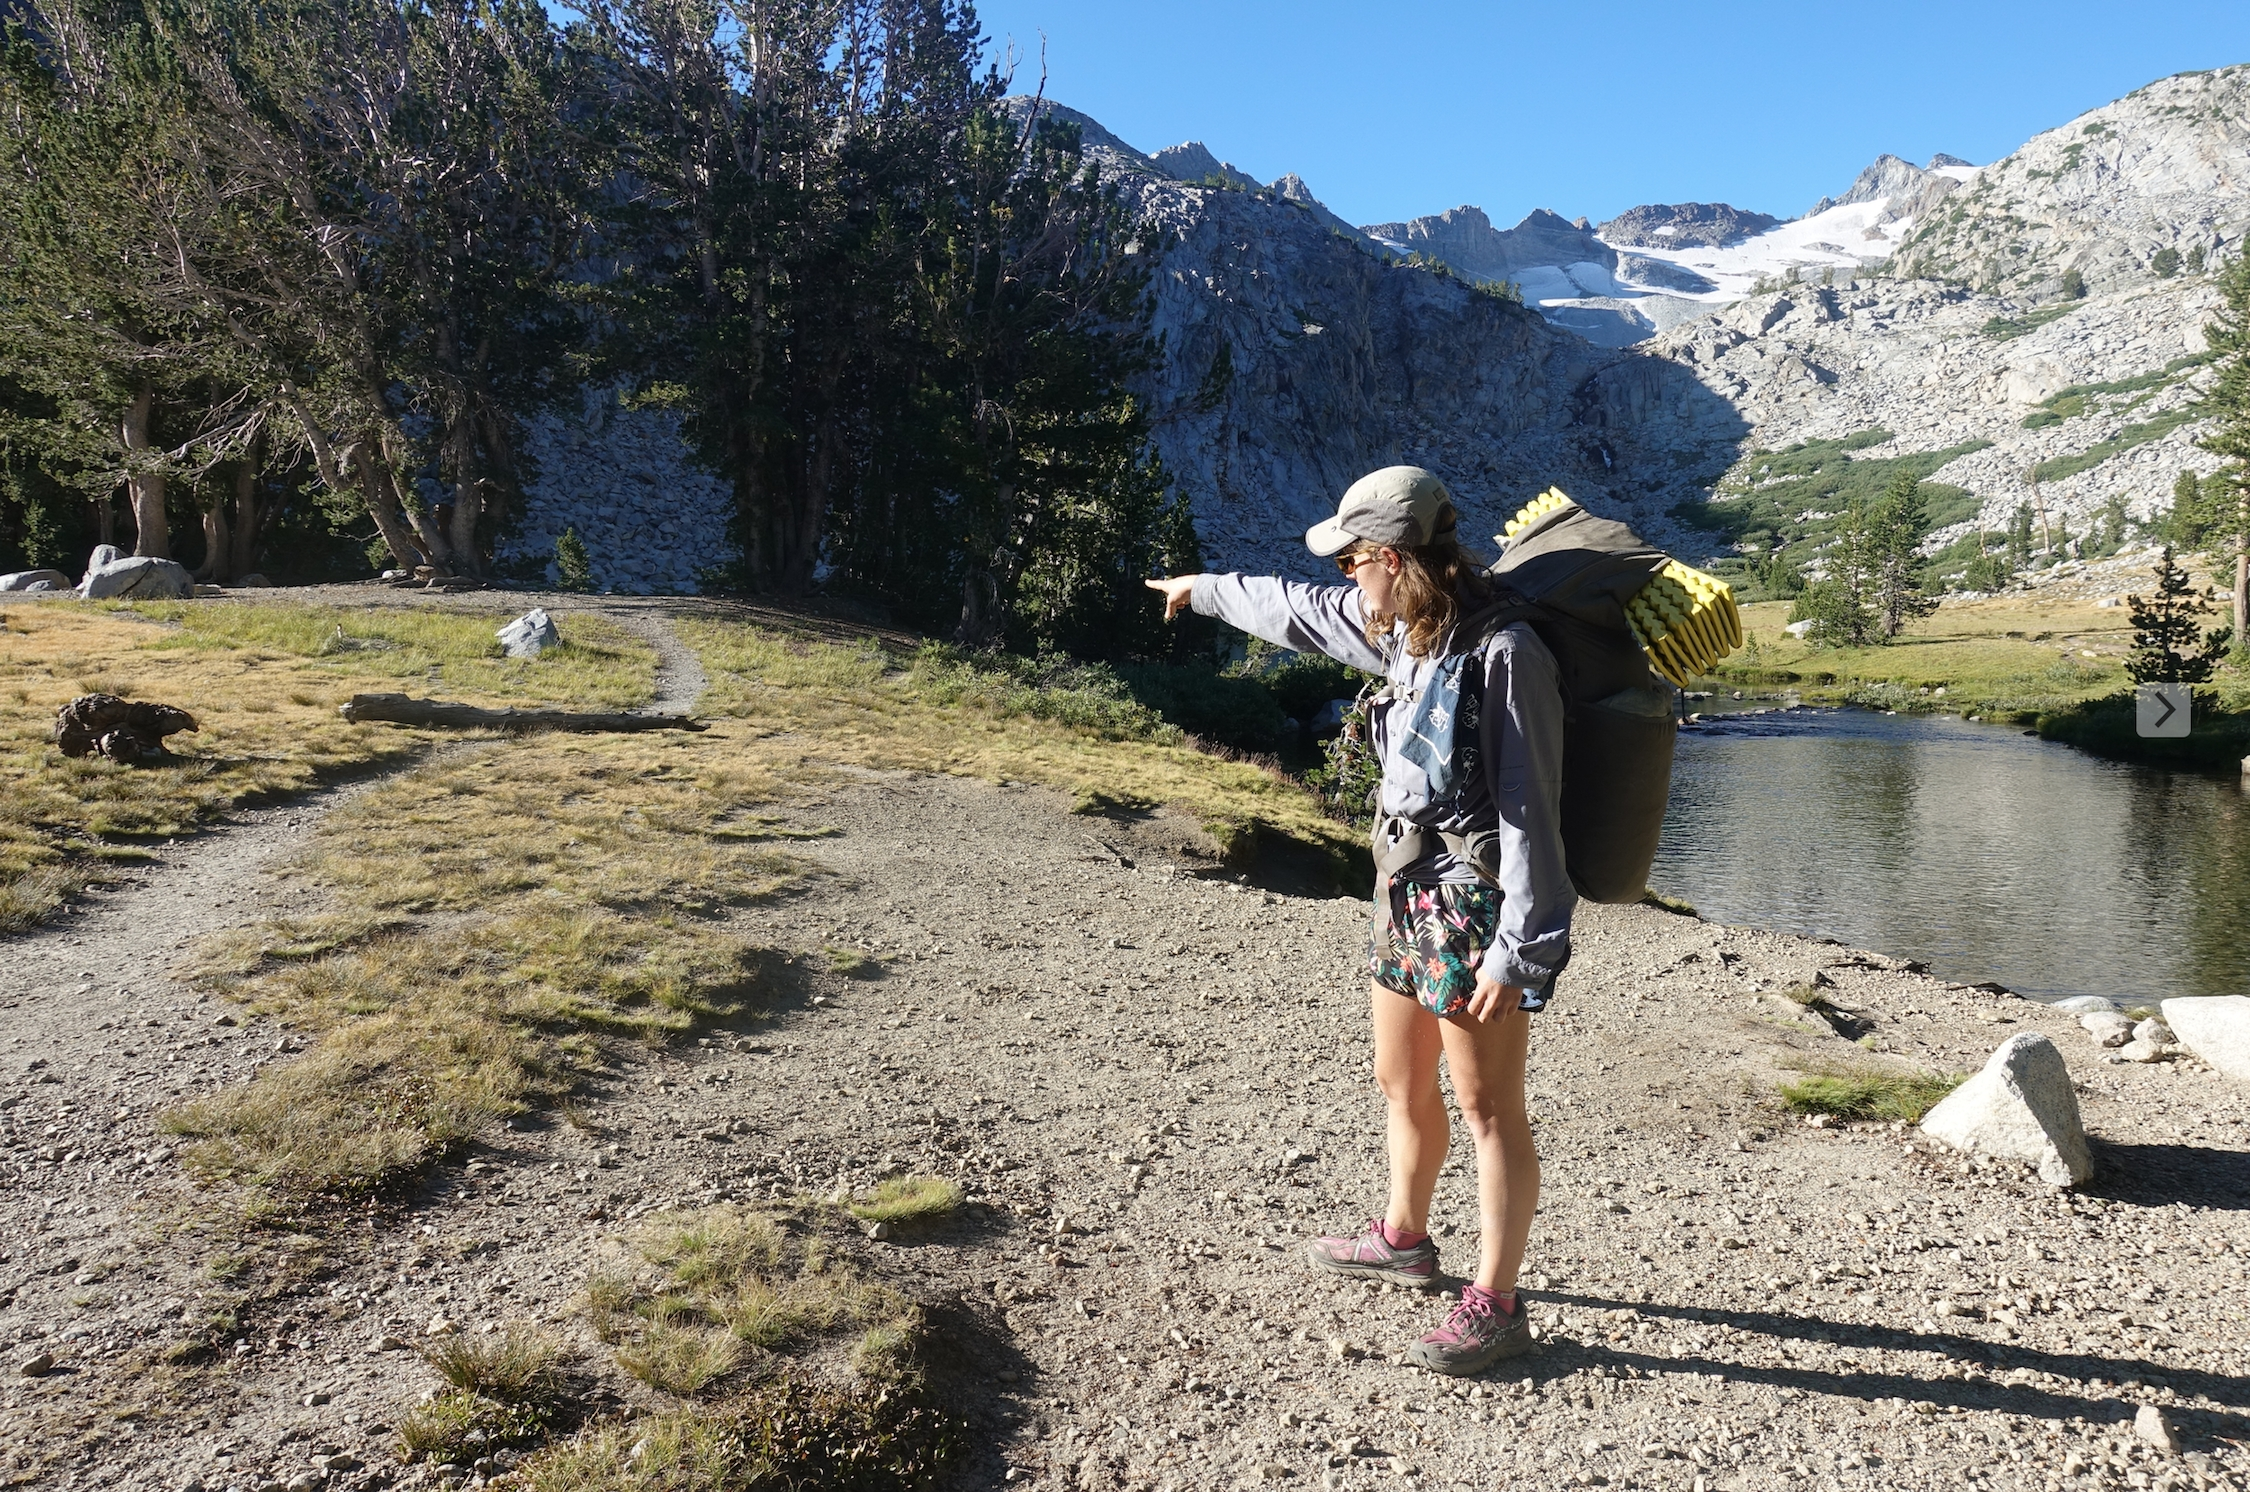 Tofu is on the JMT and pointing at the trail ahead.